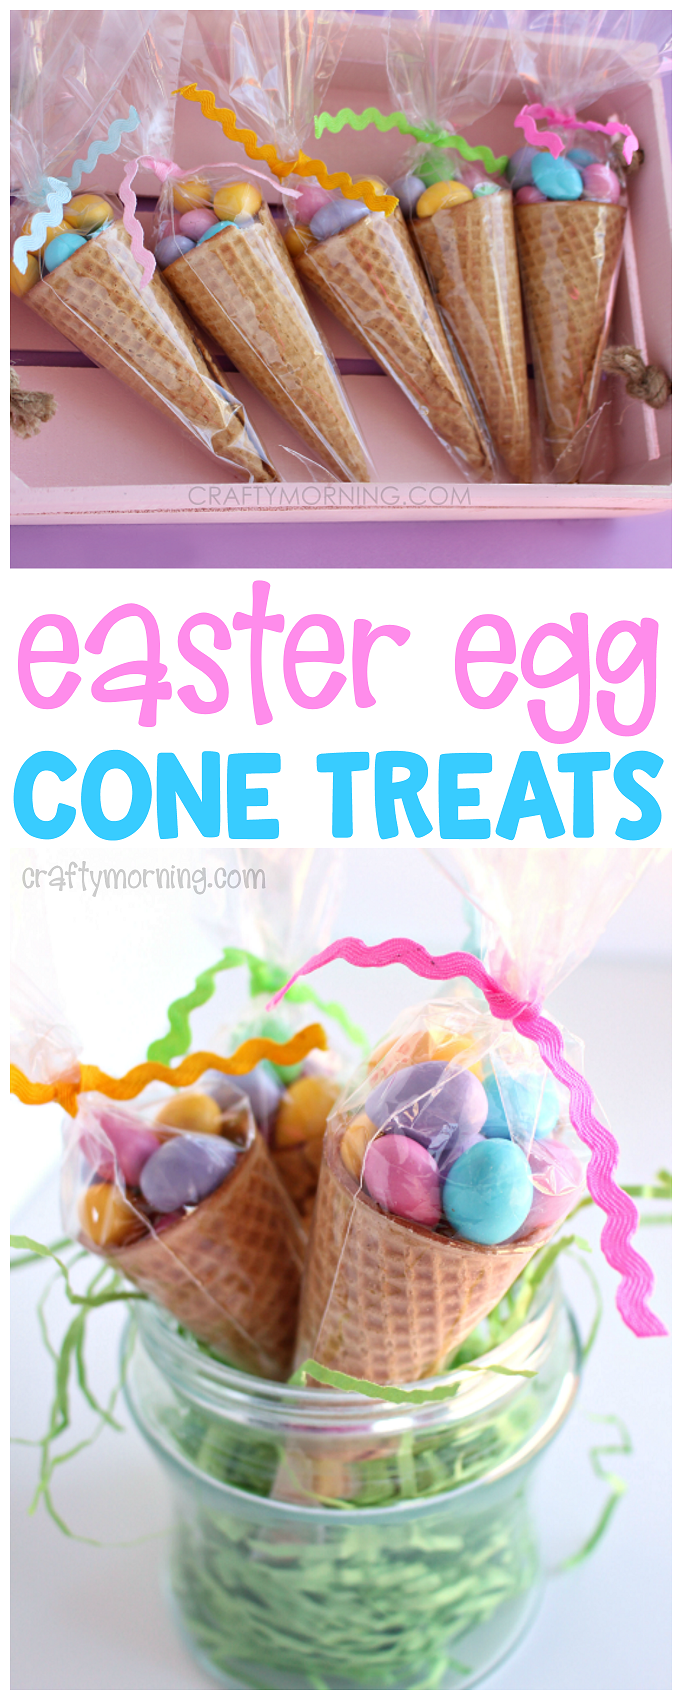 These edible easter egg cone treats are adorable cute little these edible easter egg cone treats are adorable cute little easter gift idea for negle Gallery